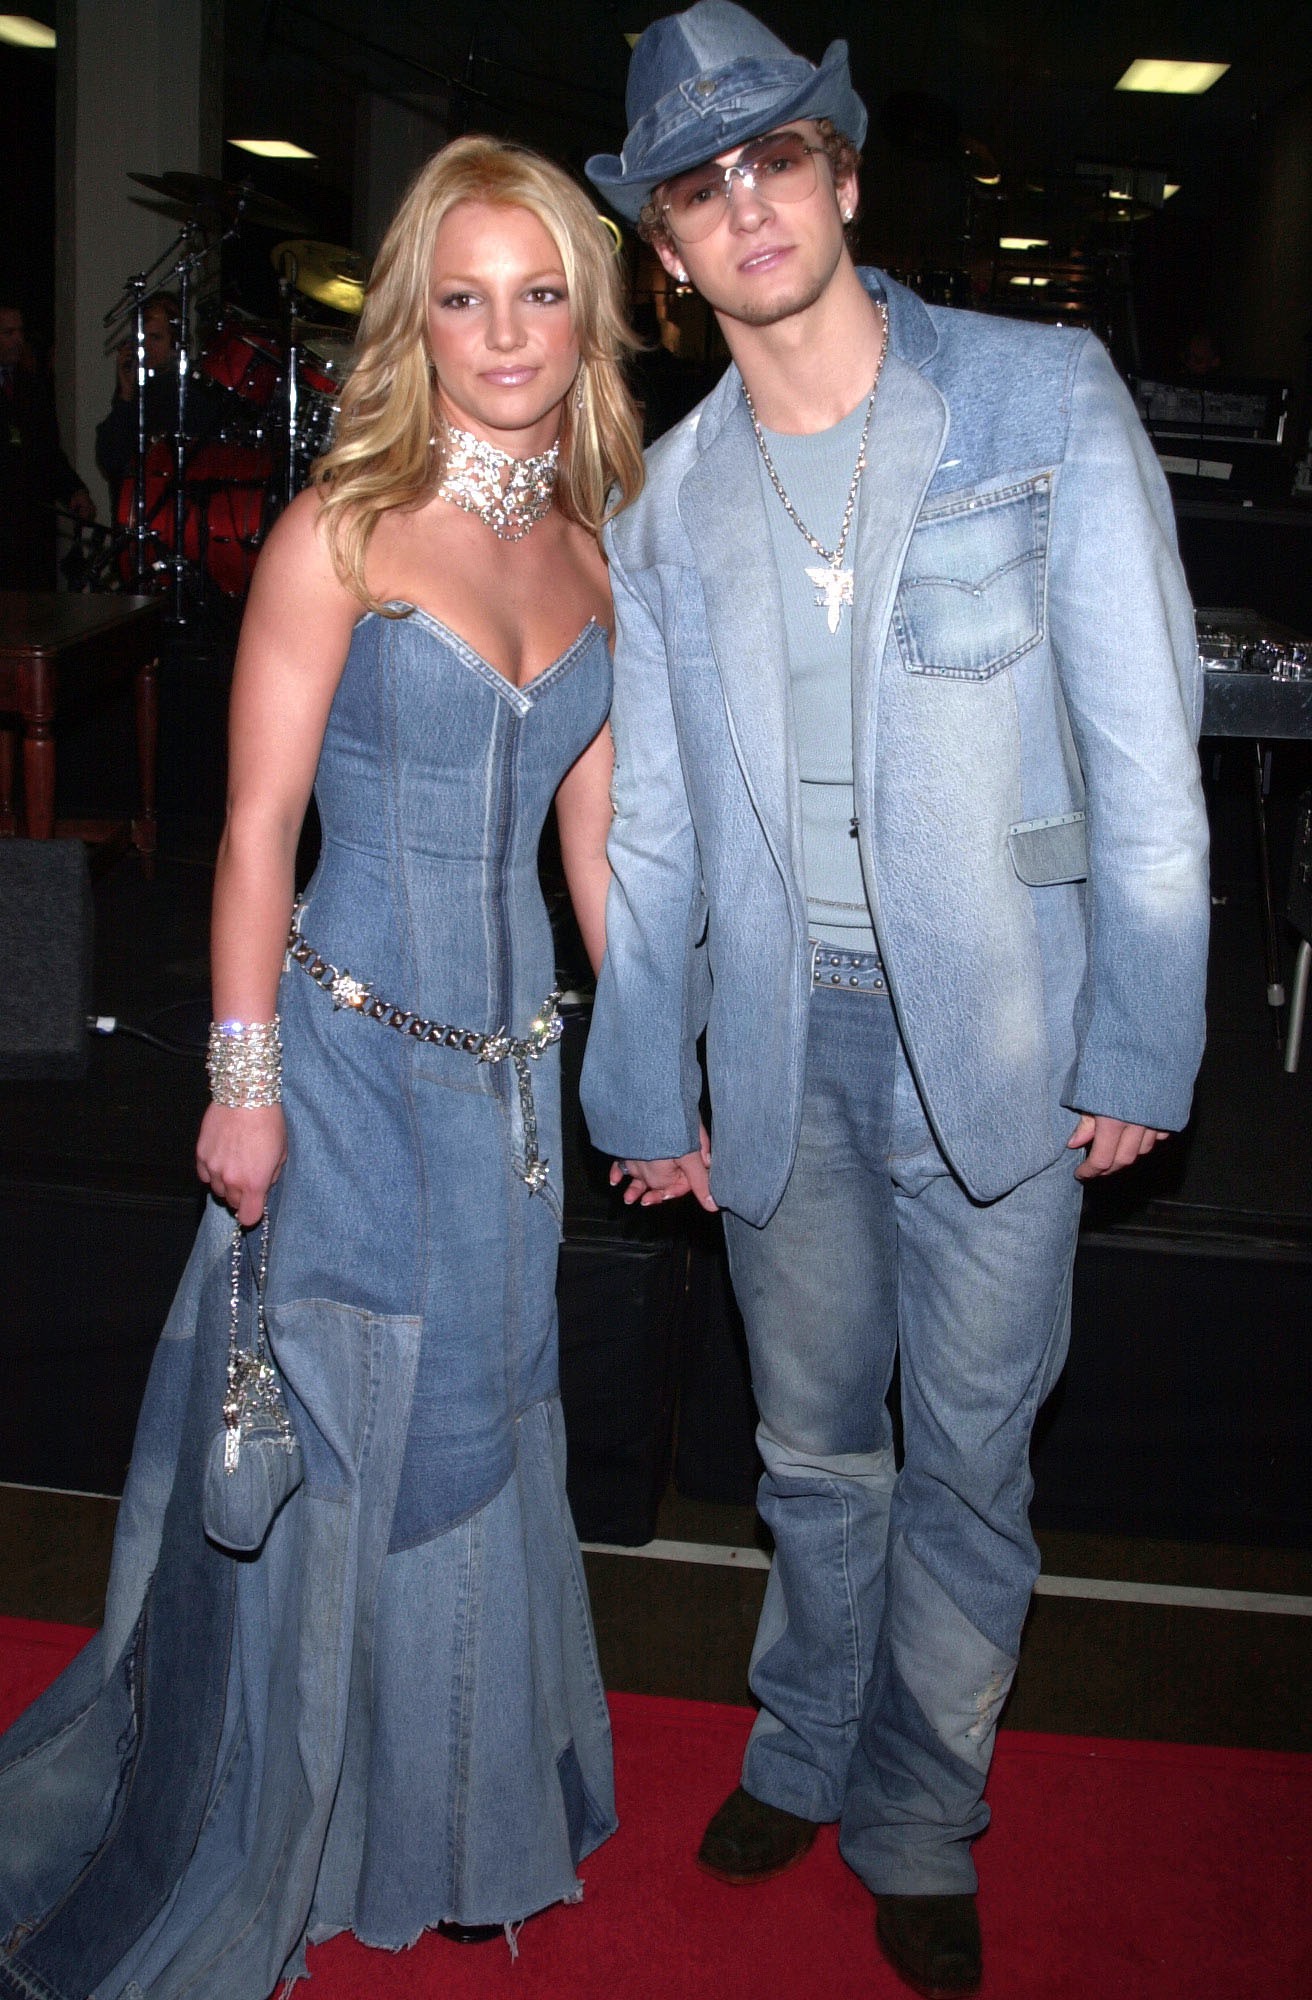 Mila Kunis and Ashton Kutcher Wore the 2018 Version of the Britney Spears and Justin Timberlake Denim Outfits